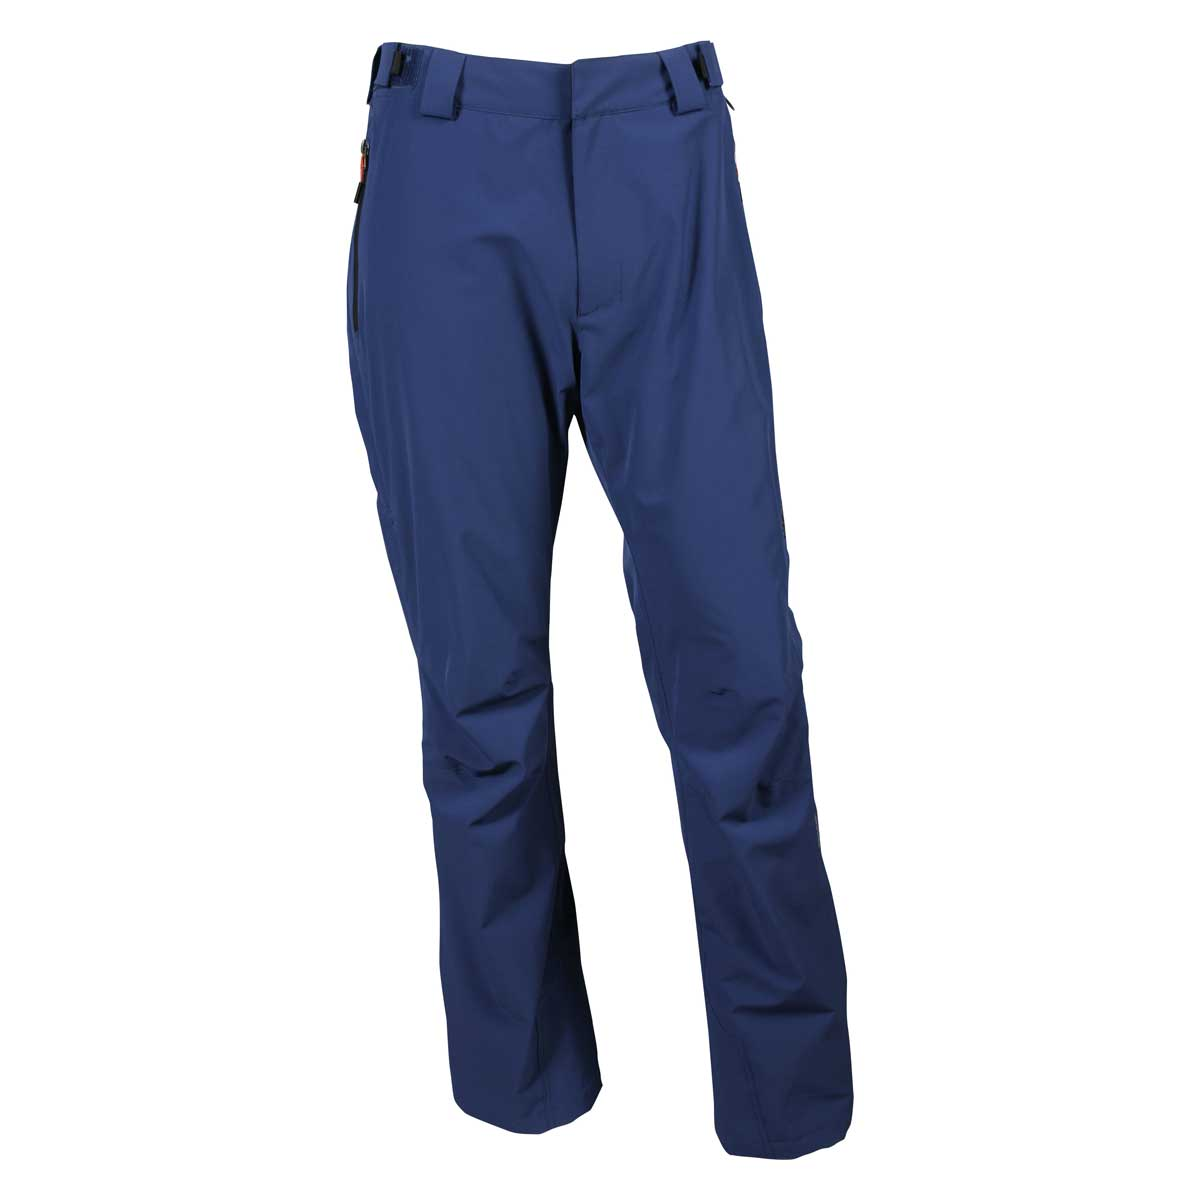 Karbon Men's Dial Pant in Navy